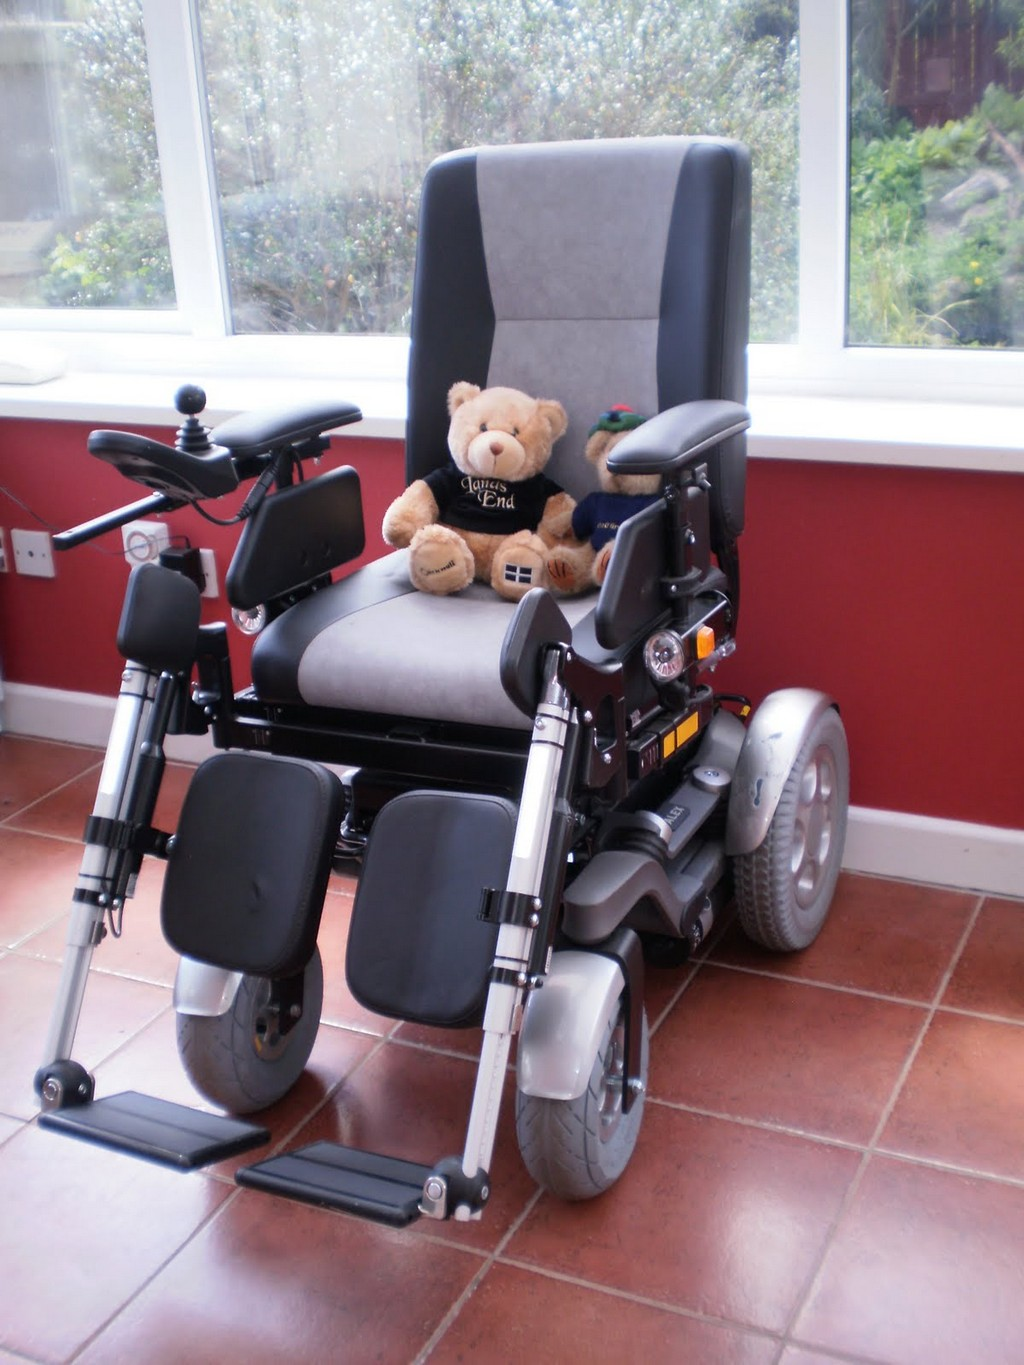 Wheelchair Assistance  Invacare power tiger pediatric